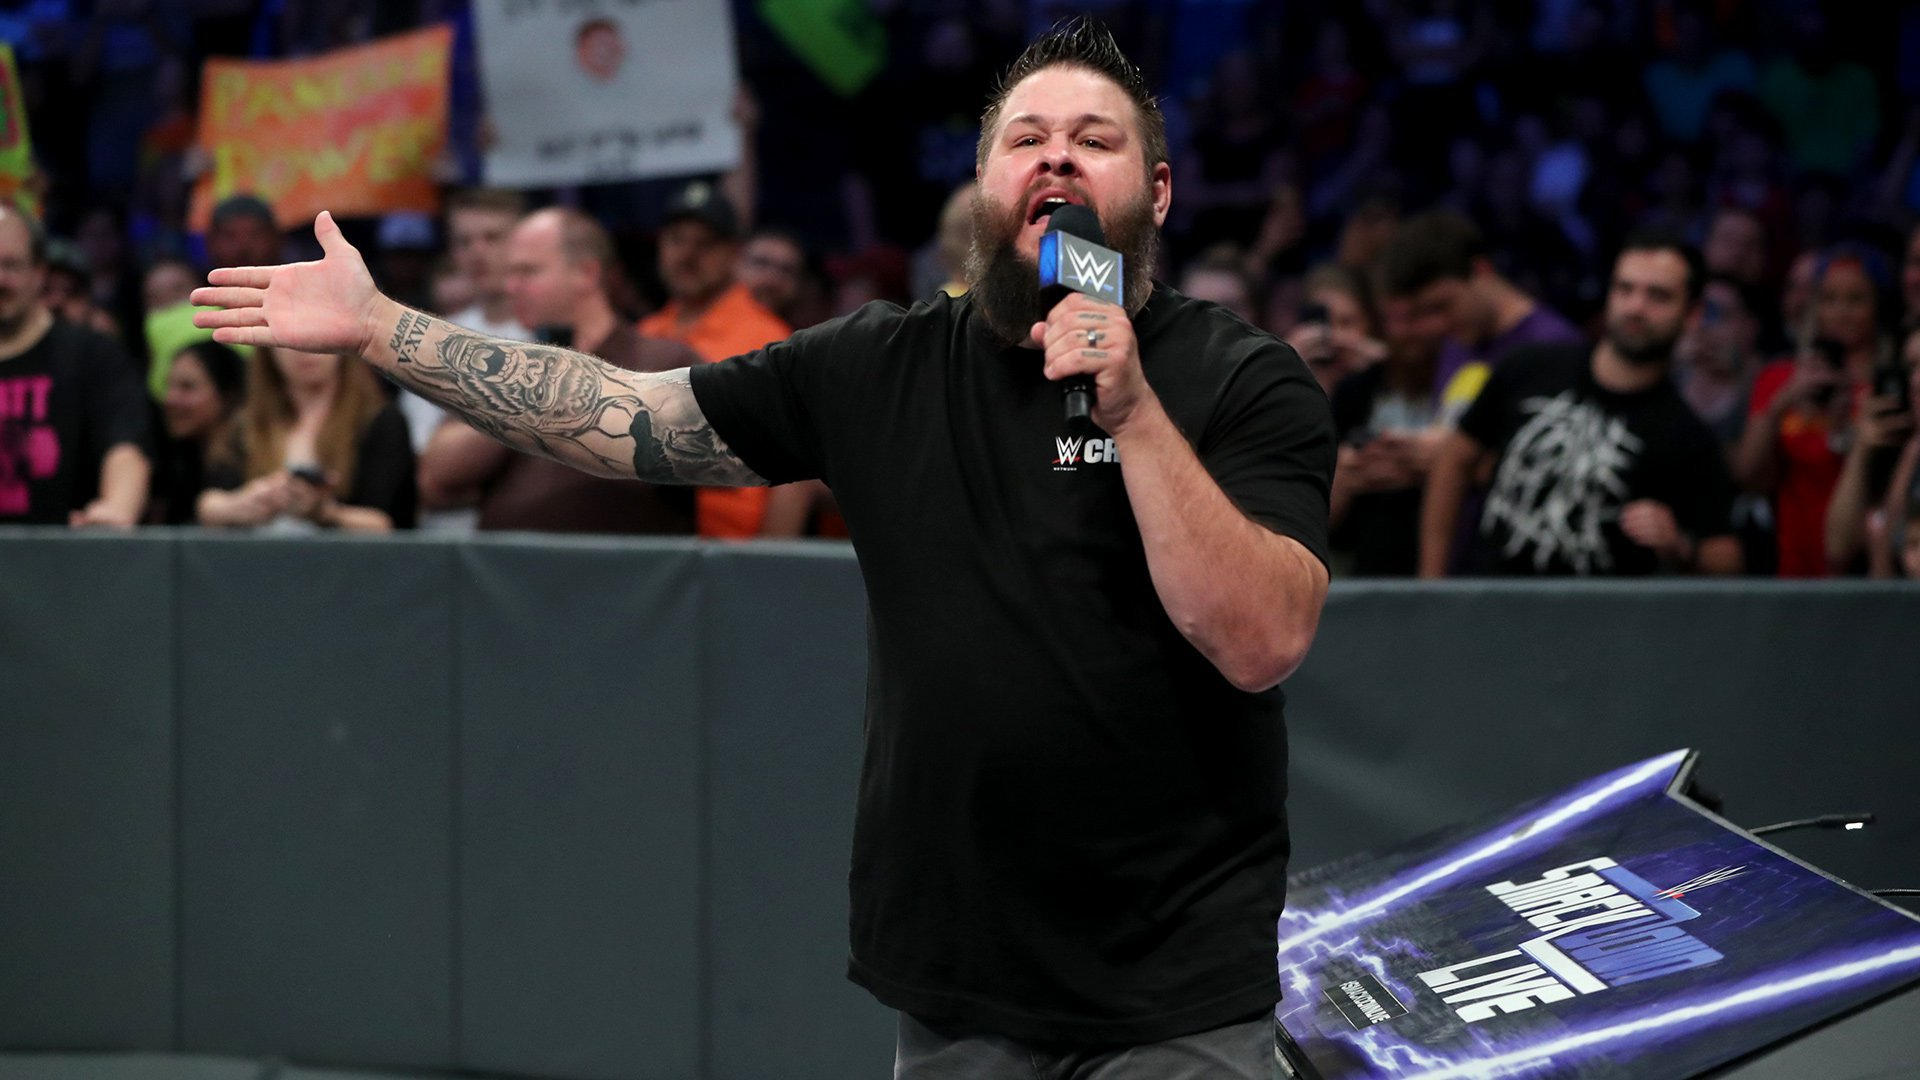 A passionate KO recalls when the McMahon Family promised to give the fans what they want, but he says the only thing they got was more Shane McMahon, and he screams that no one wanted that.